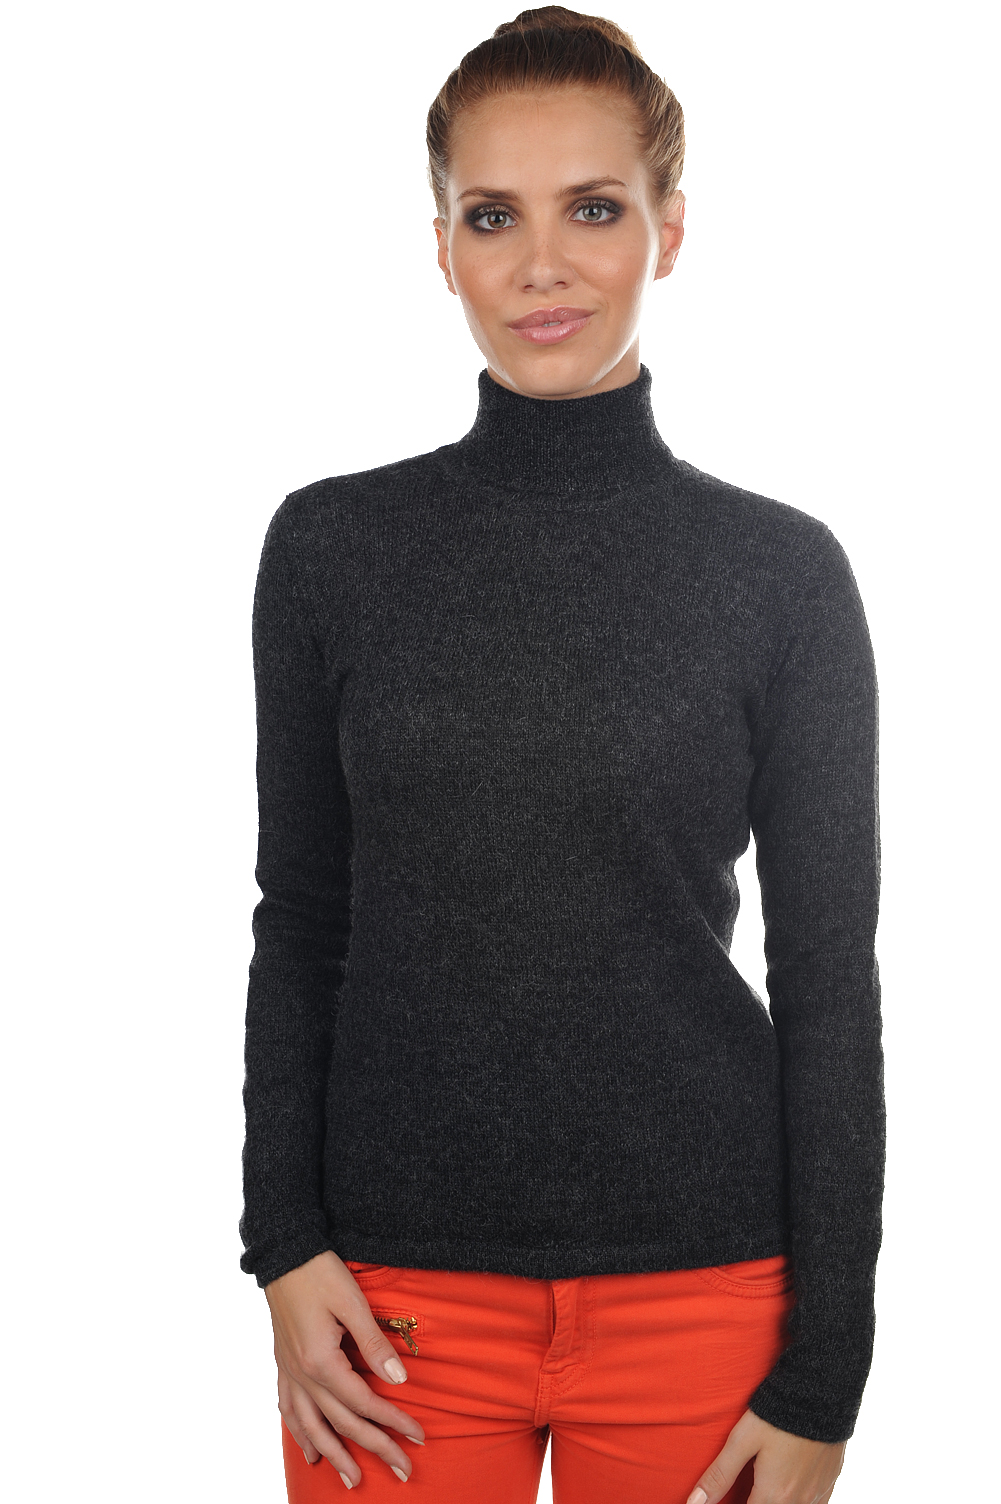 alpaca alpaca for ladies jade alpa charcoal marl s